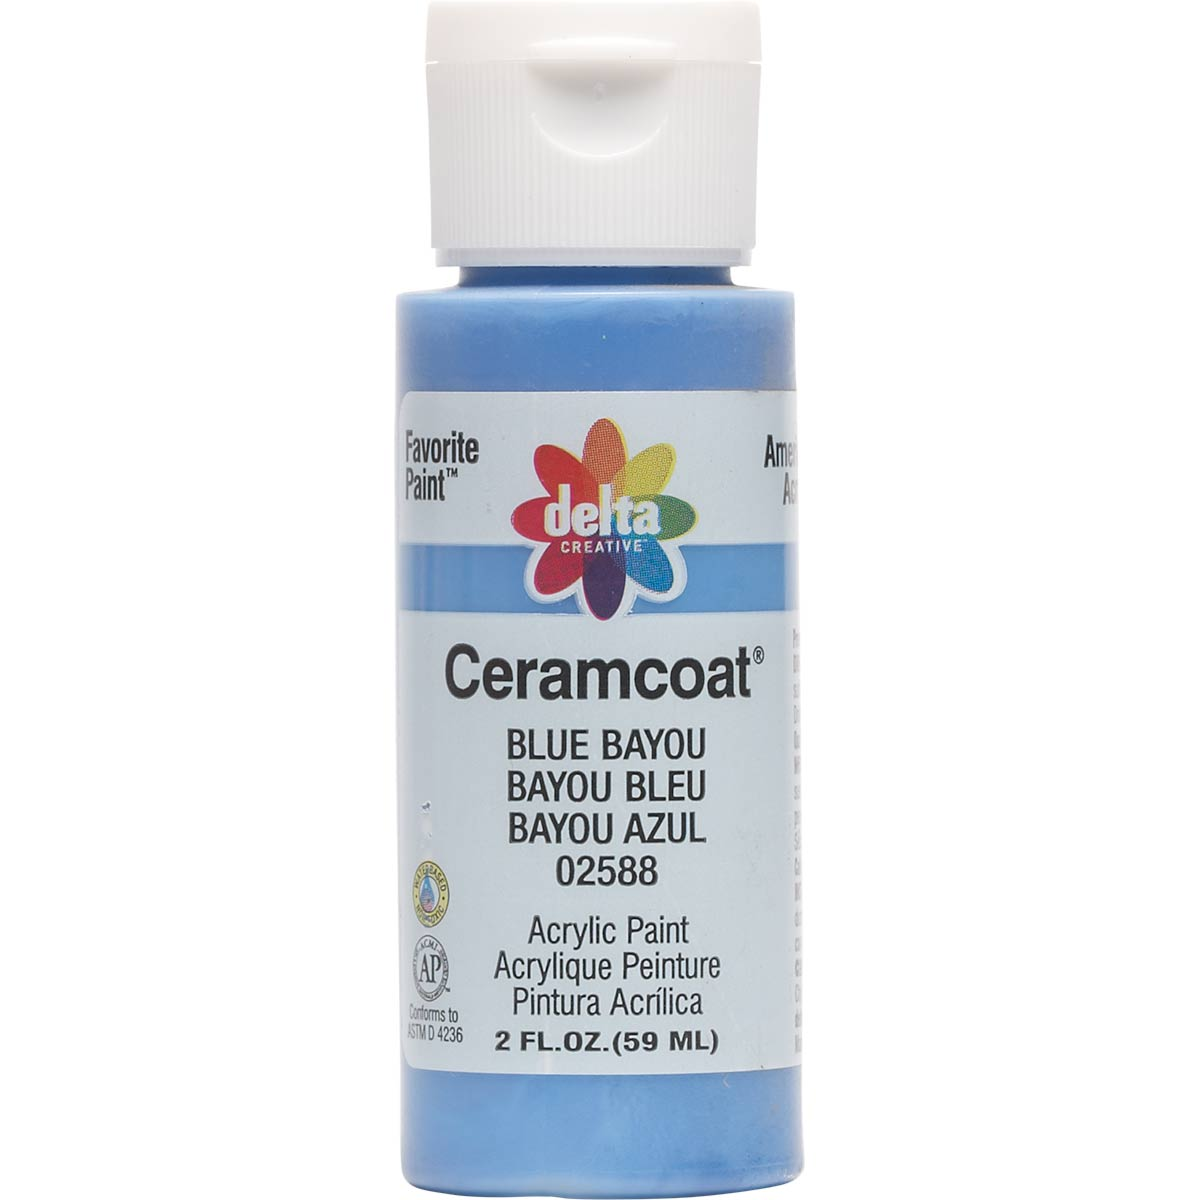 Delta Ceramcoat ® Acrylic Paint - Blue Bayou, 2 oz.